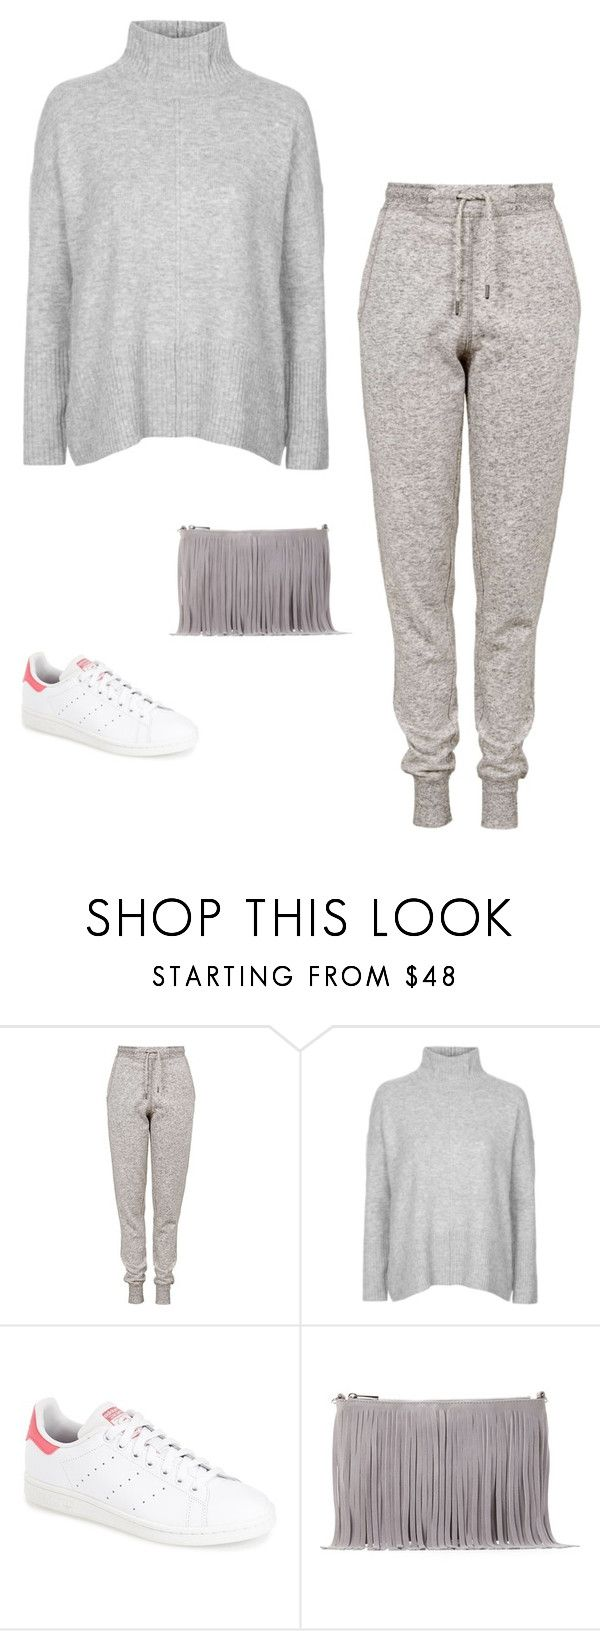 """""""Styling Mrs Oliver"""" by sarahcdesign on Polyvore featuring Topshop, adidas and Posse"""